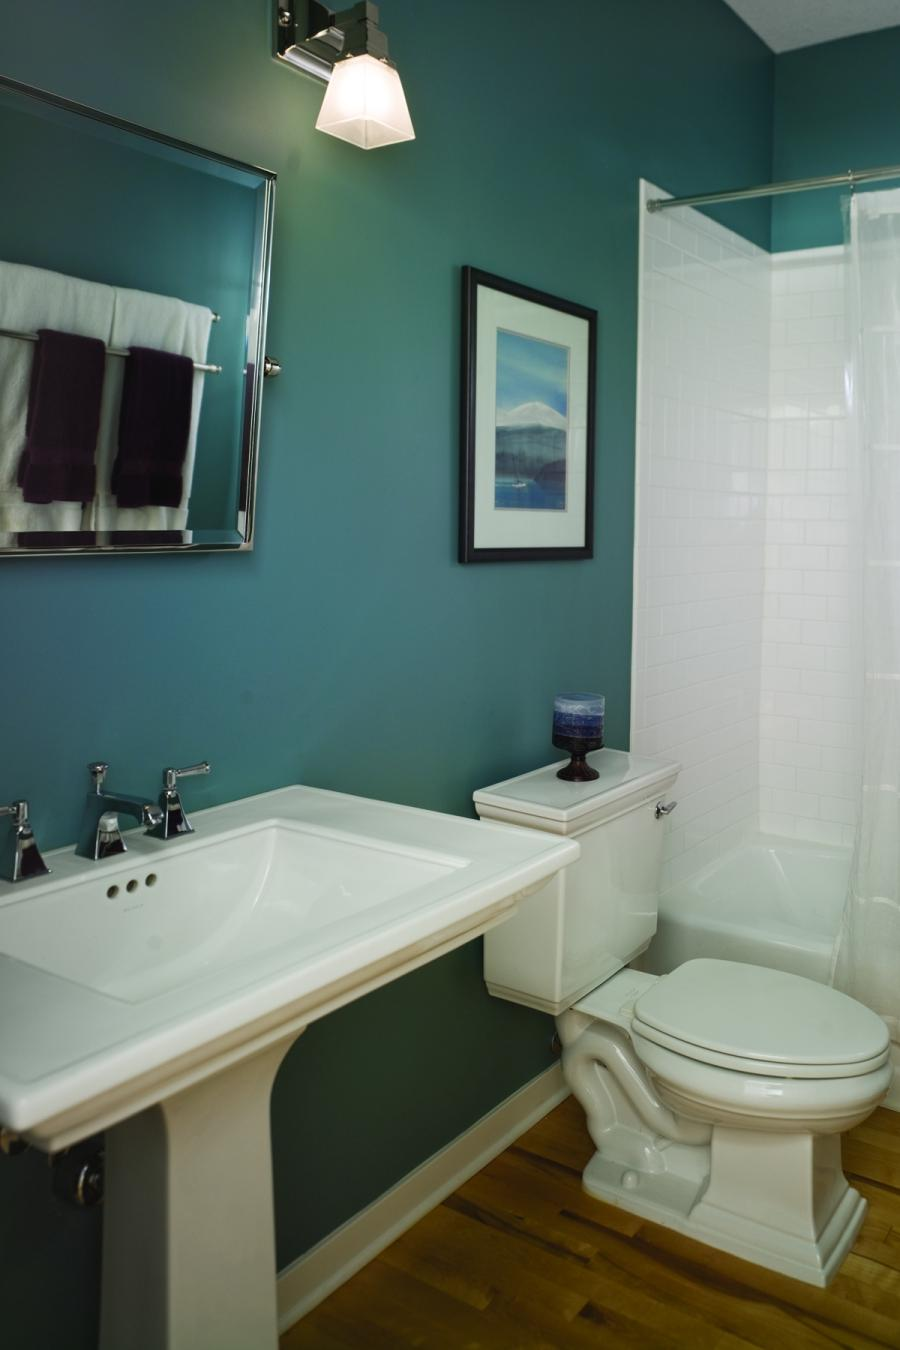 Bathroom Design Remodeling Ideas On Budget Eco Bathroom Budget